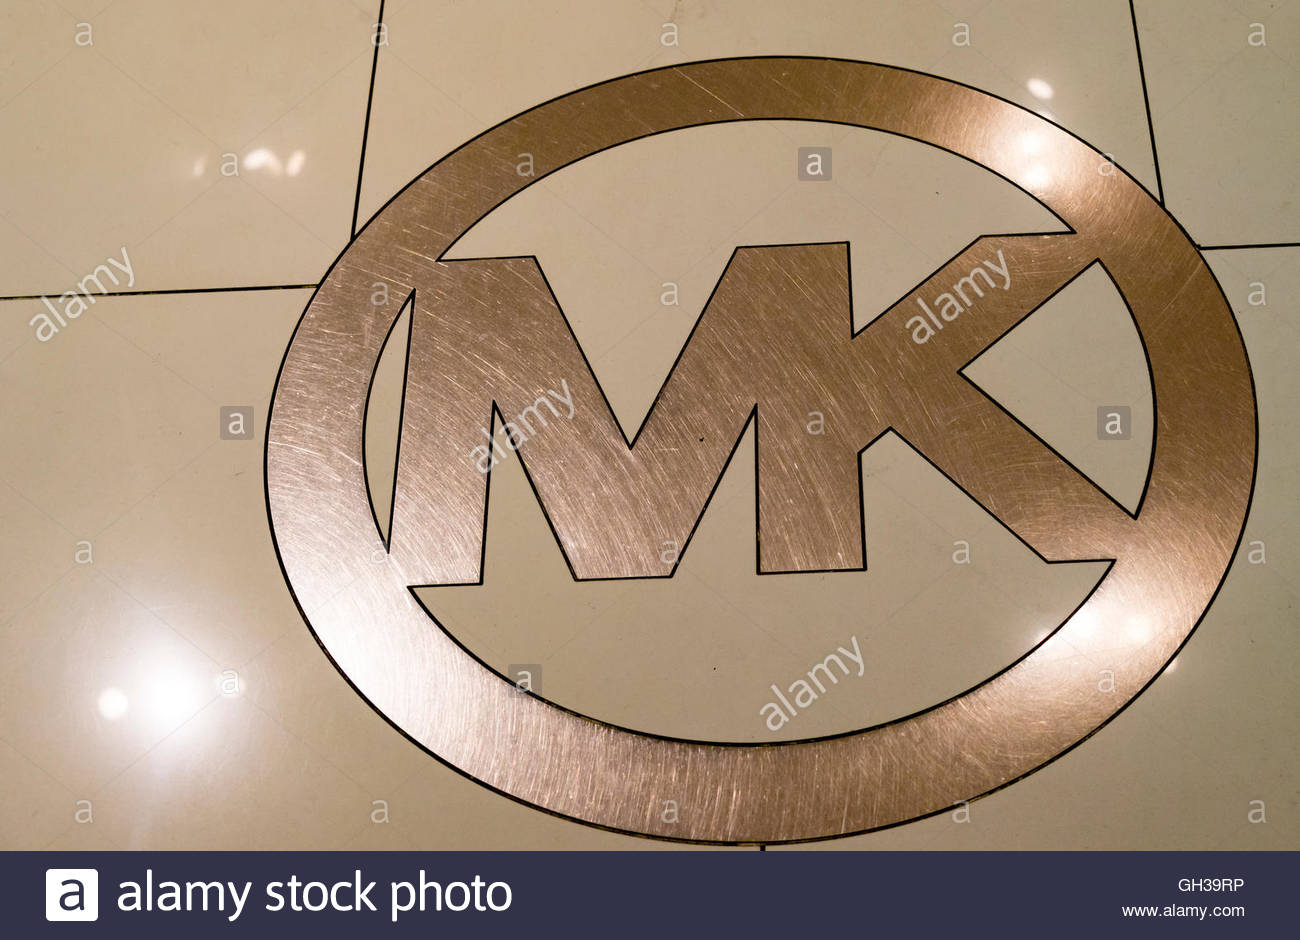 Michael Kors brand logo engraved outside the store's wall. Michael Kors is a New York City-based American sportswear - Stock Image